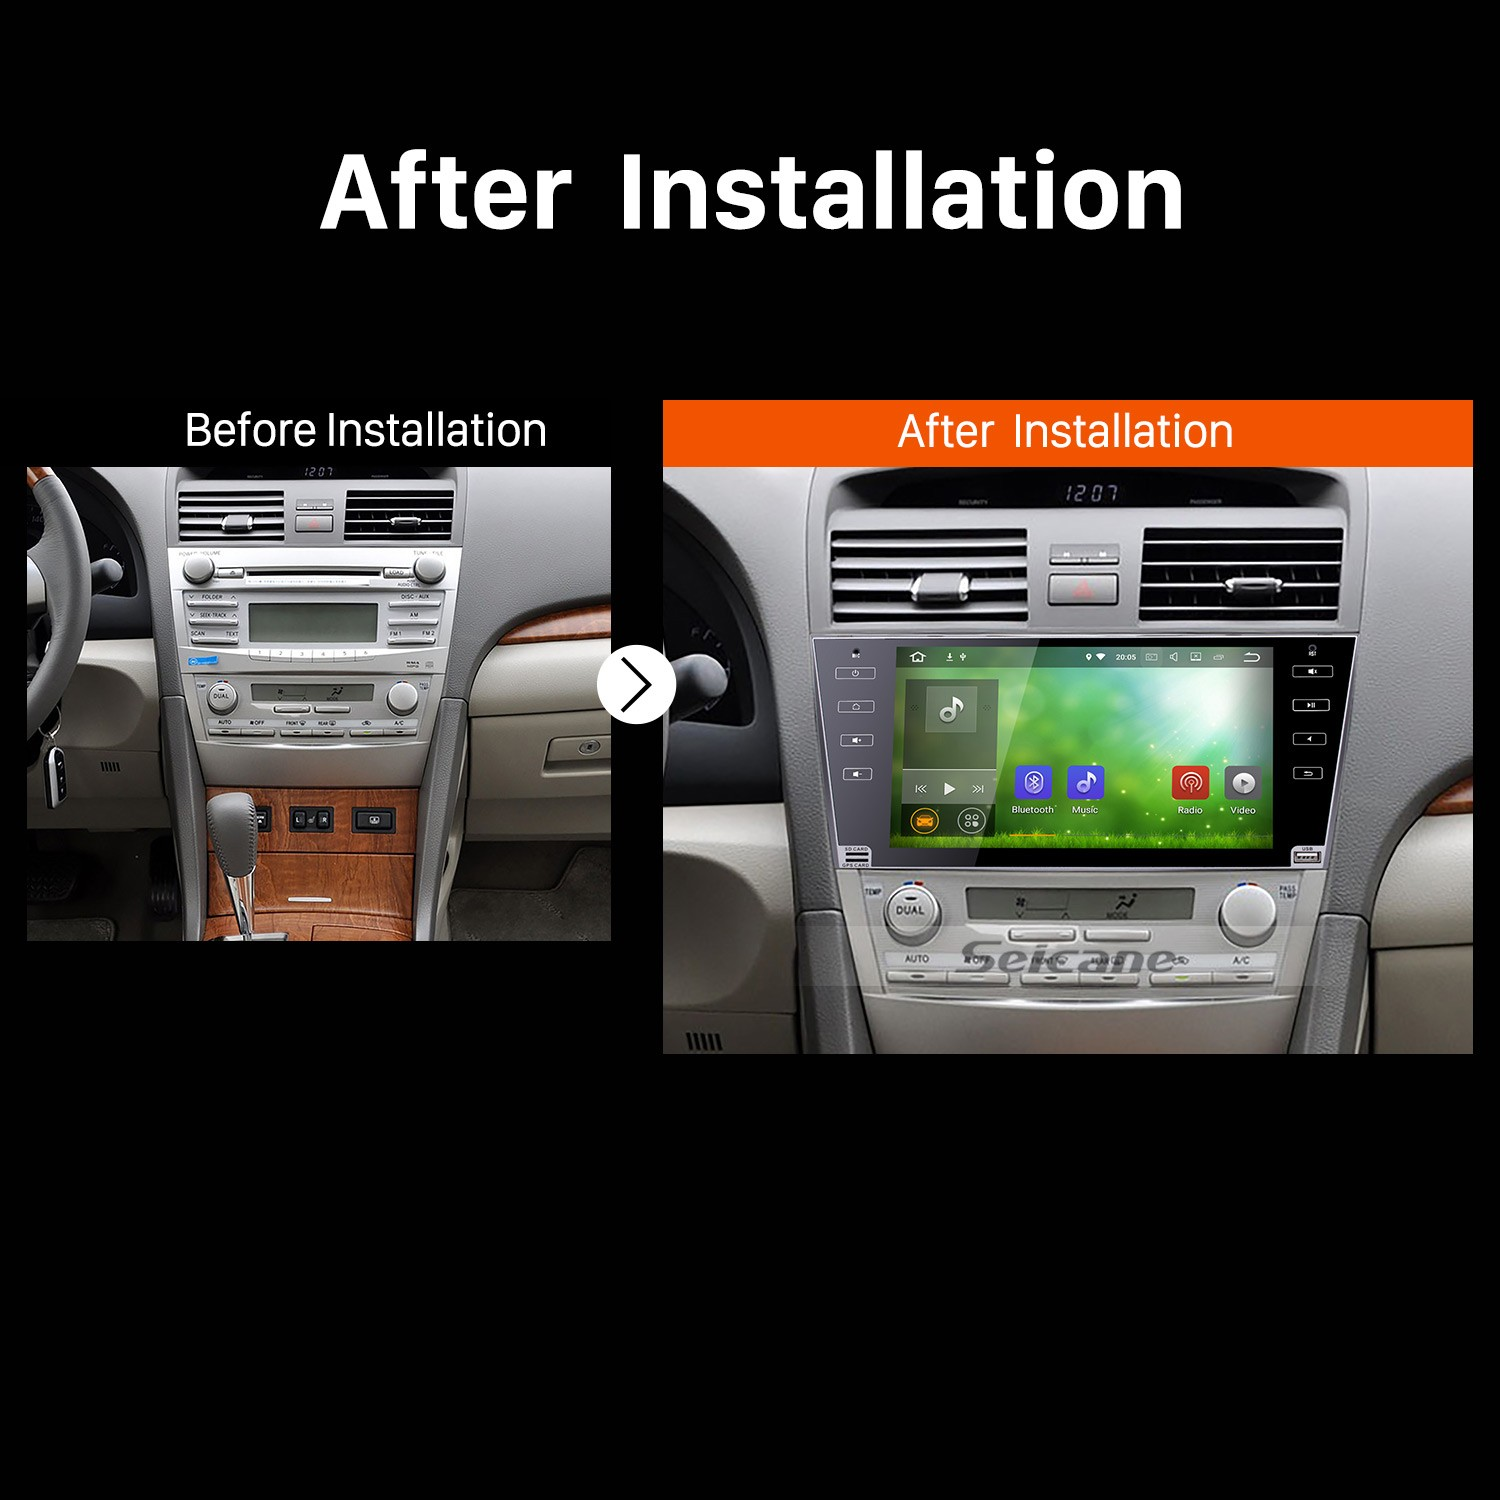 detailed removal and installation steps for a 2007 2008 2009 2010 2011 toyota camry gps. Black Bedroom Furniture Sets. Home Design Ideas